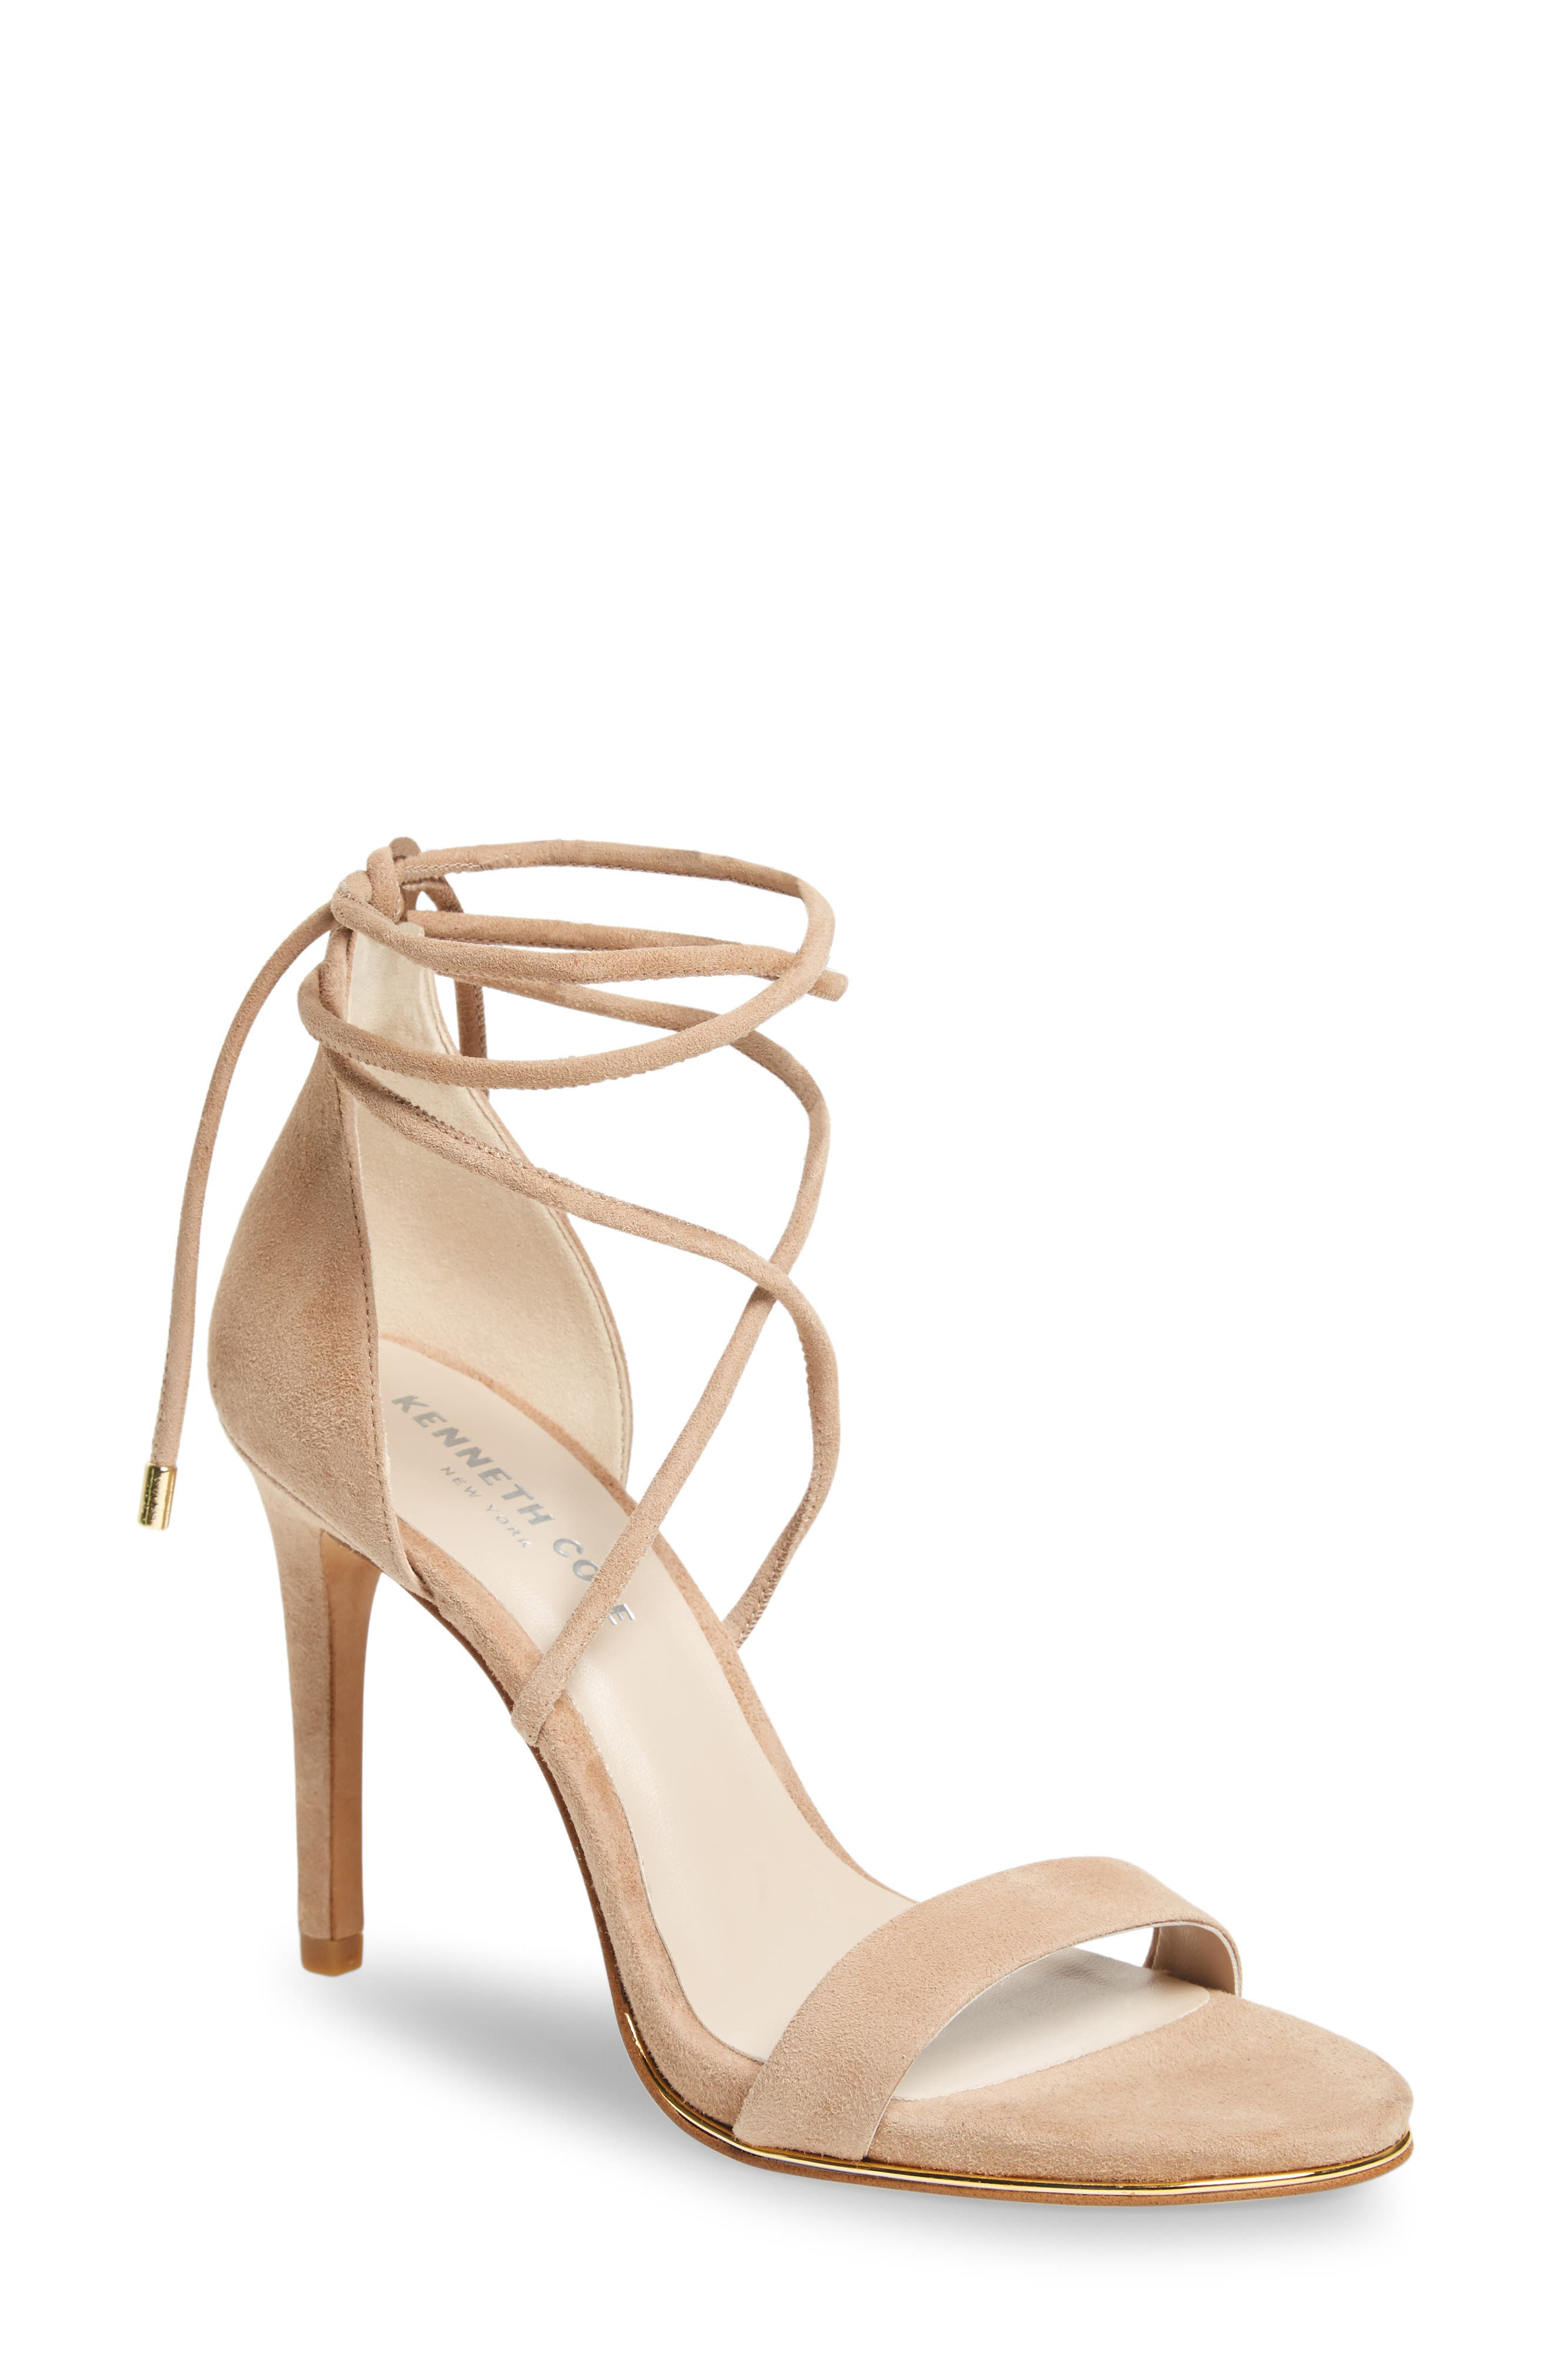 KENNETH COLE NEW YORK, Berry Wraparound Sandal, Main thumbnail 1, color, ALMOND SUEDE